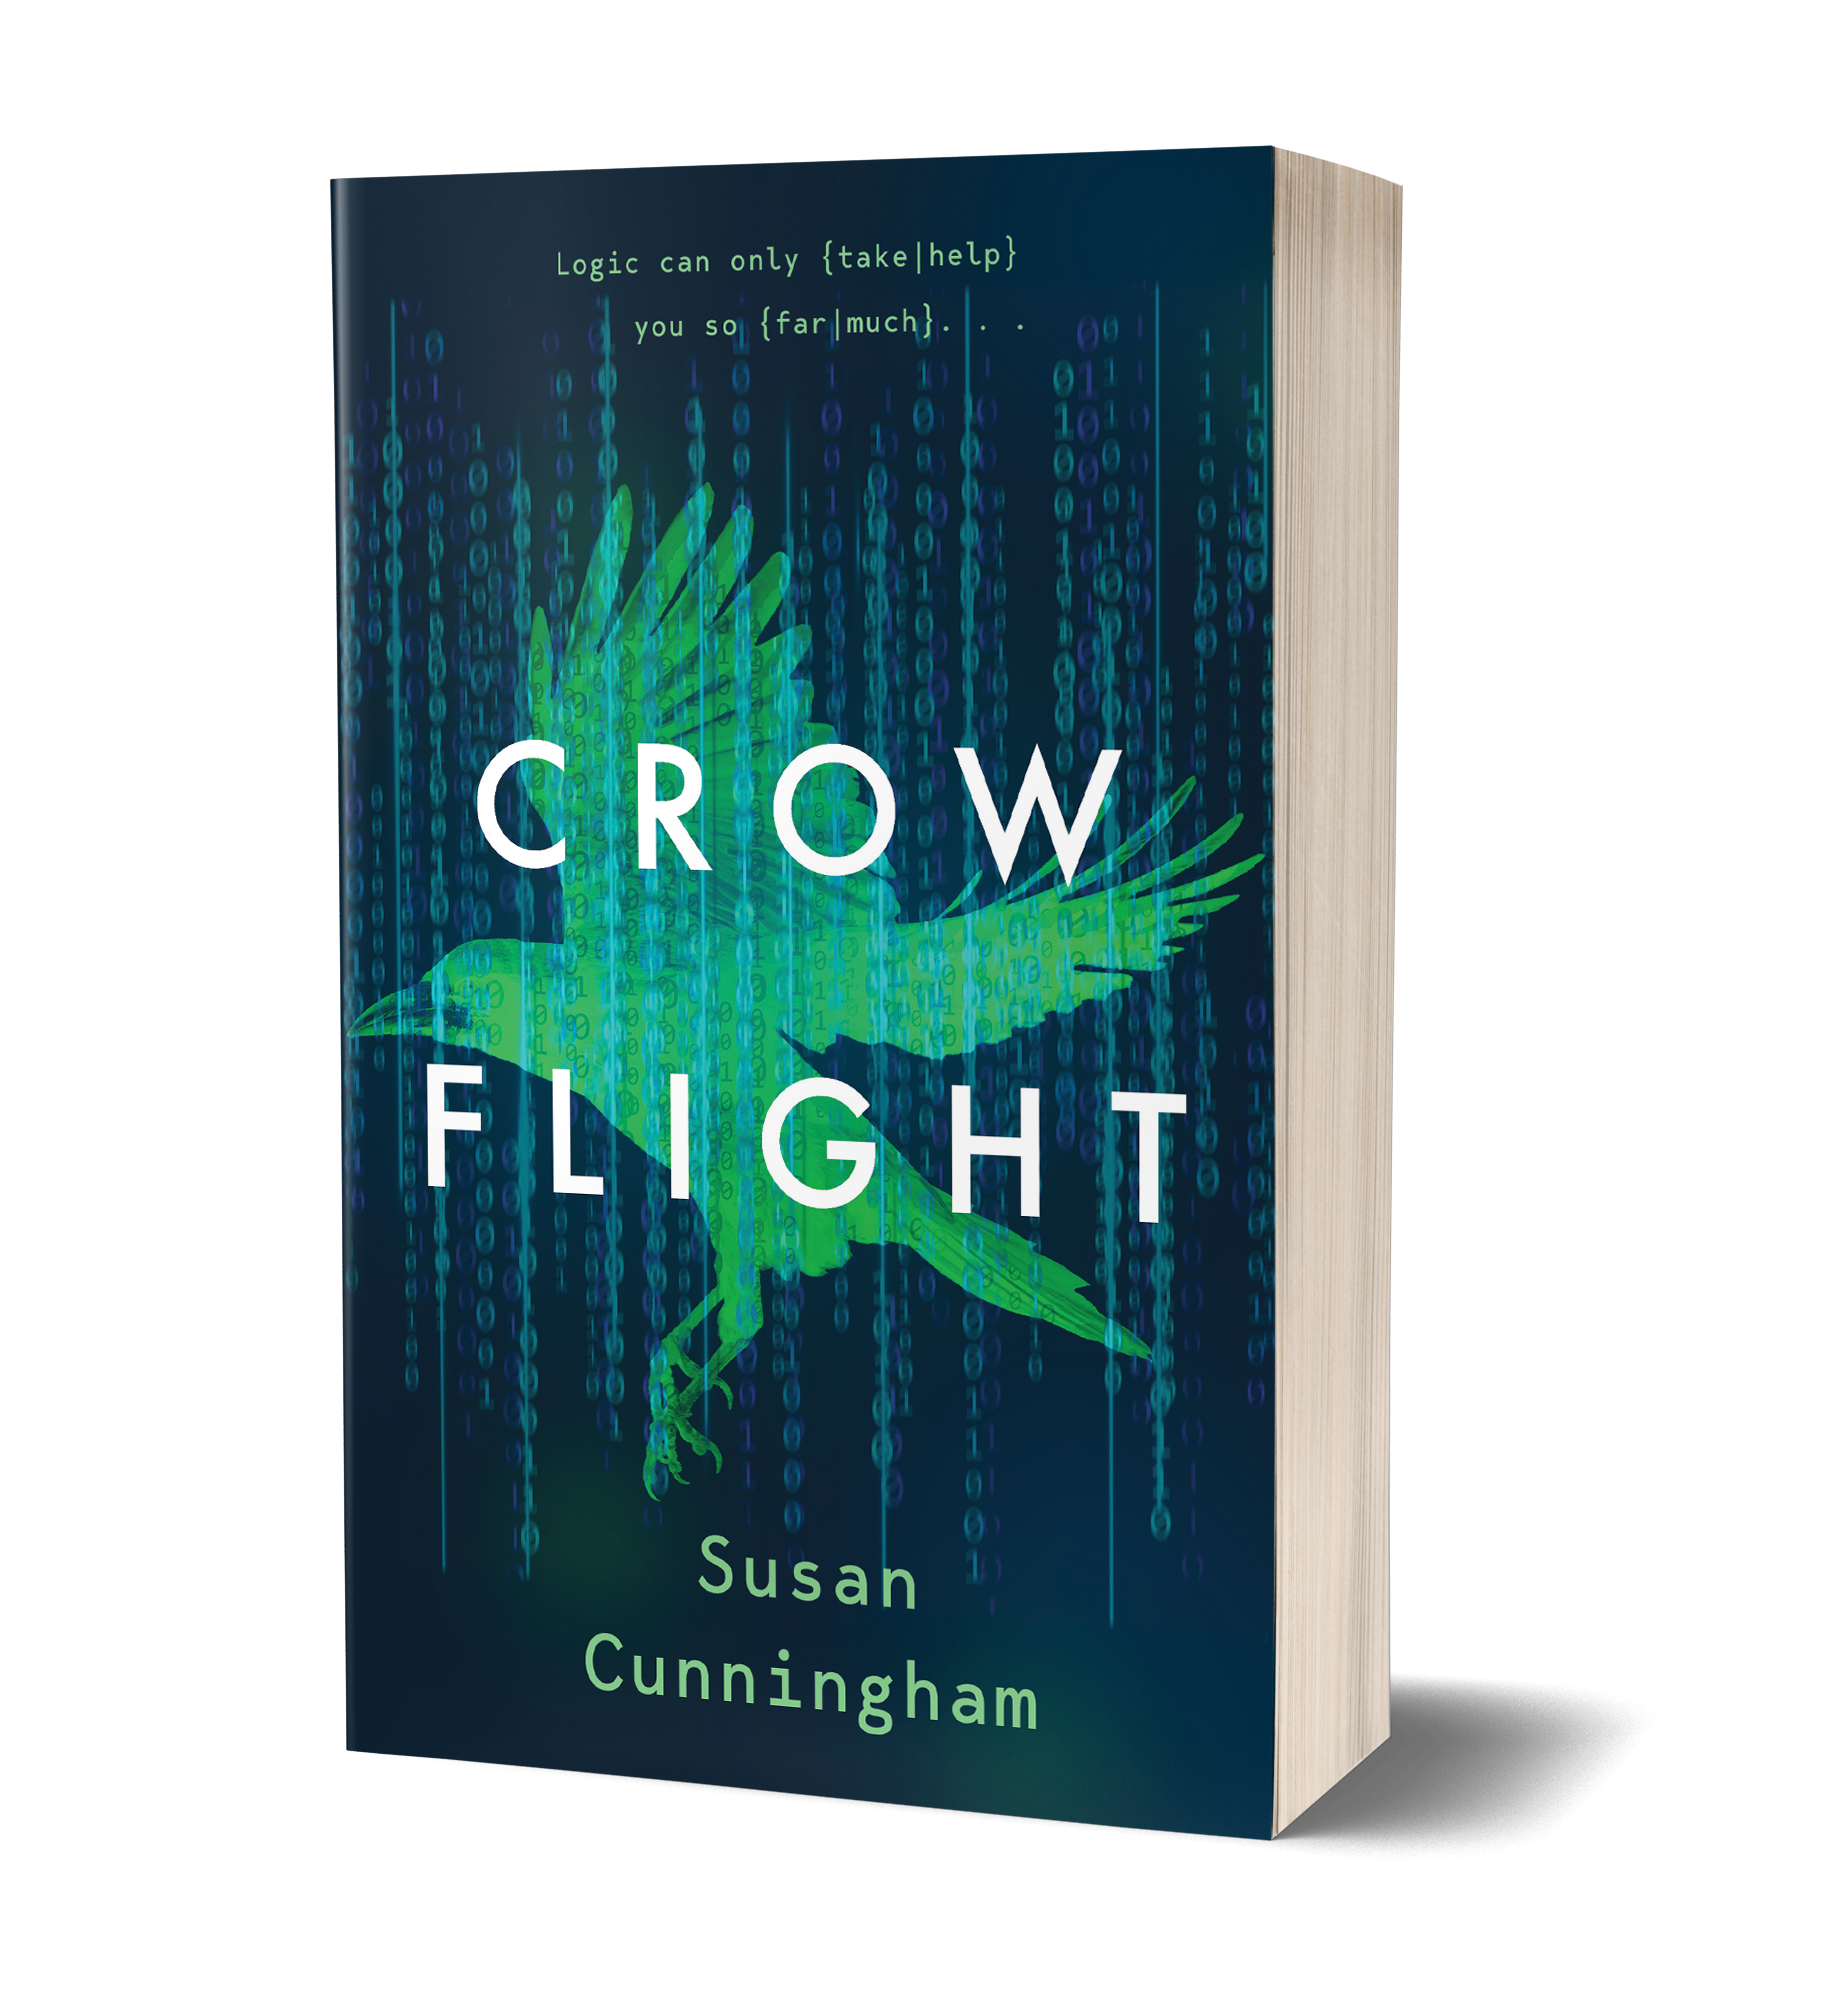 Crow flight book cover. Green Crow flying over blue background, with coding numbers in the background